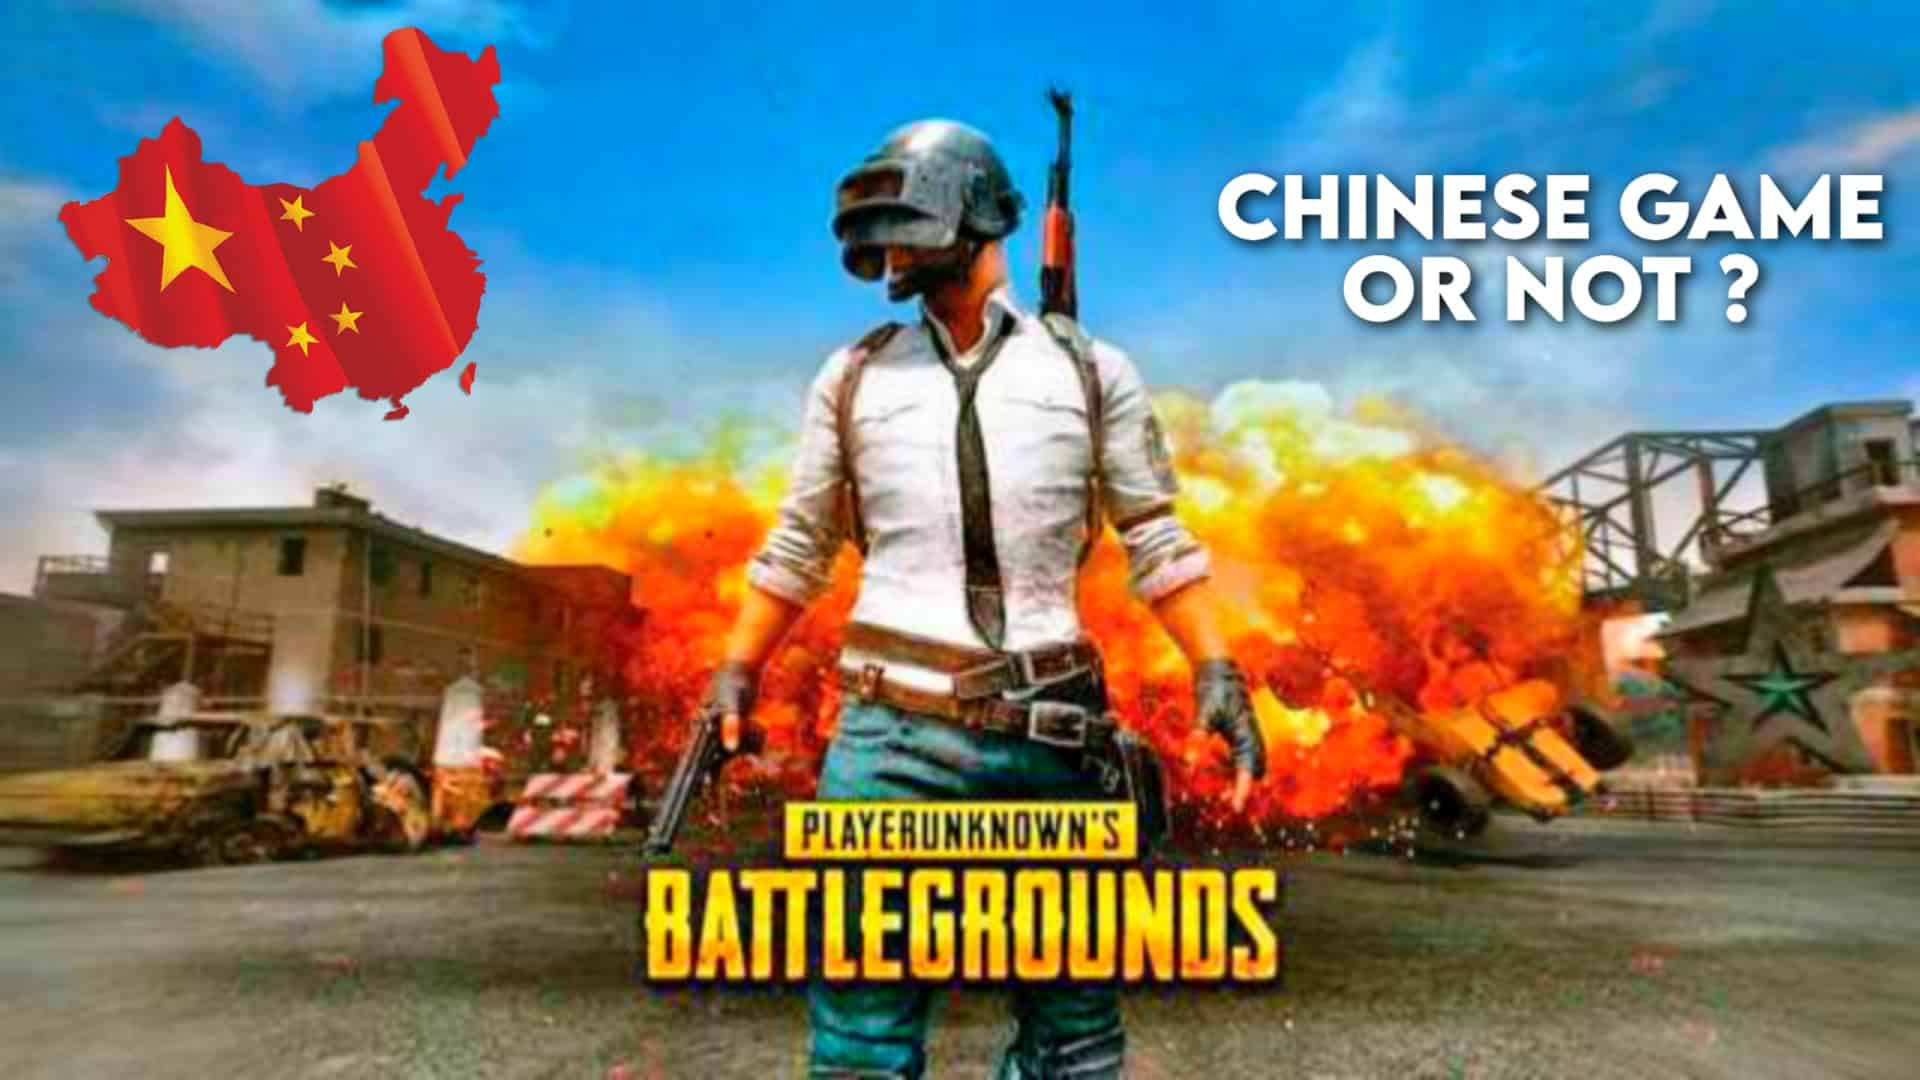 PUBG Mobile is a Chinese Game Or Not- Origin Of PUBG Mobile